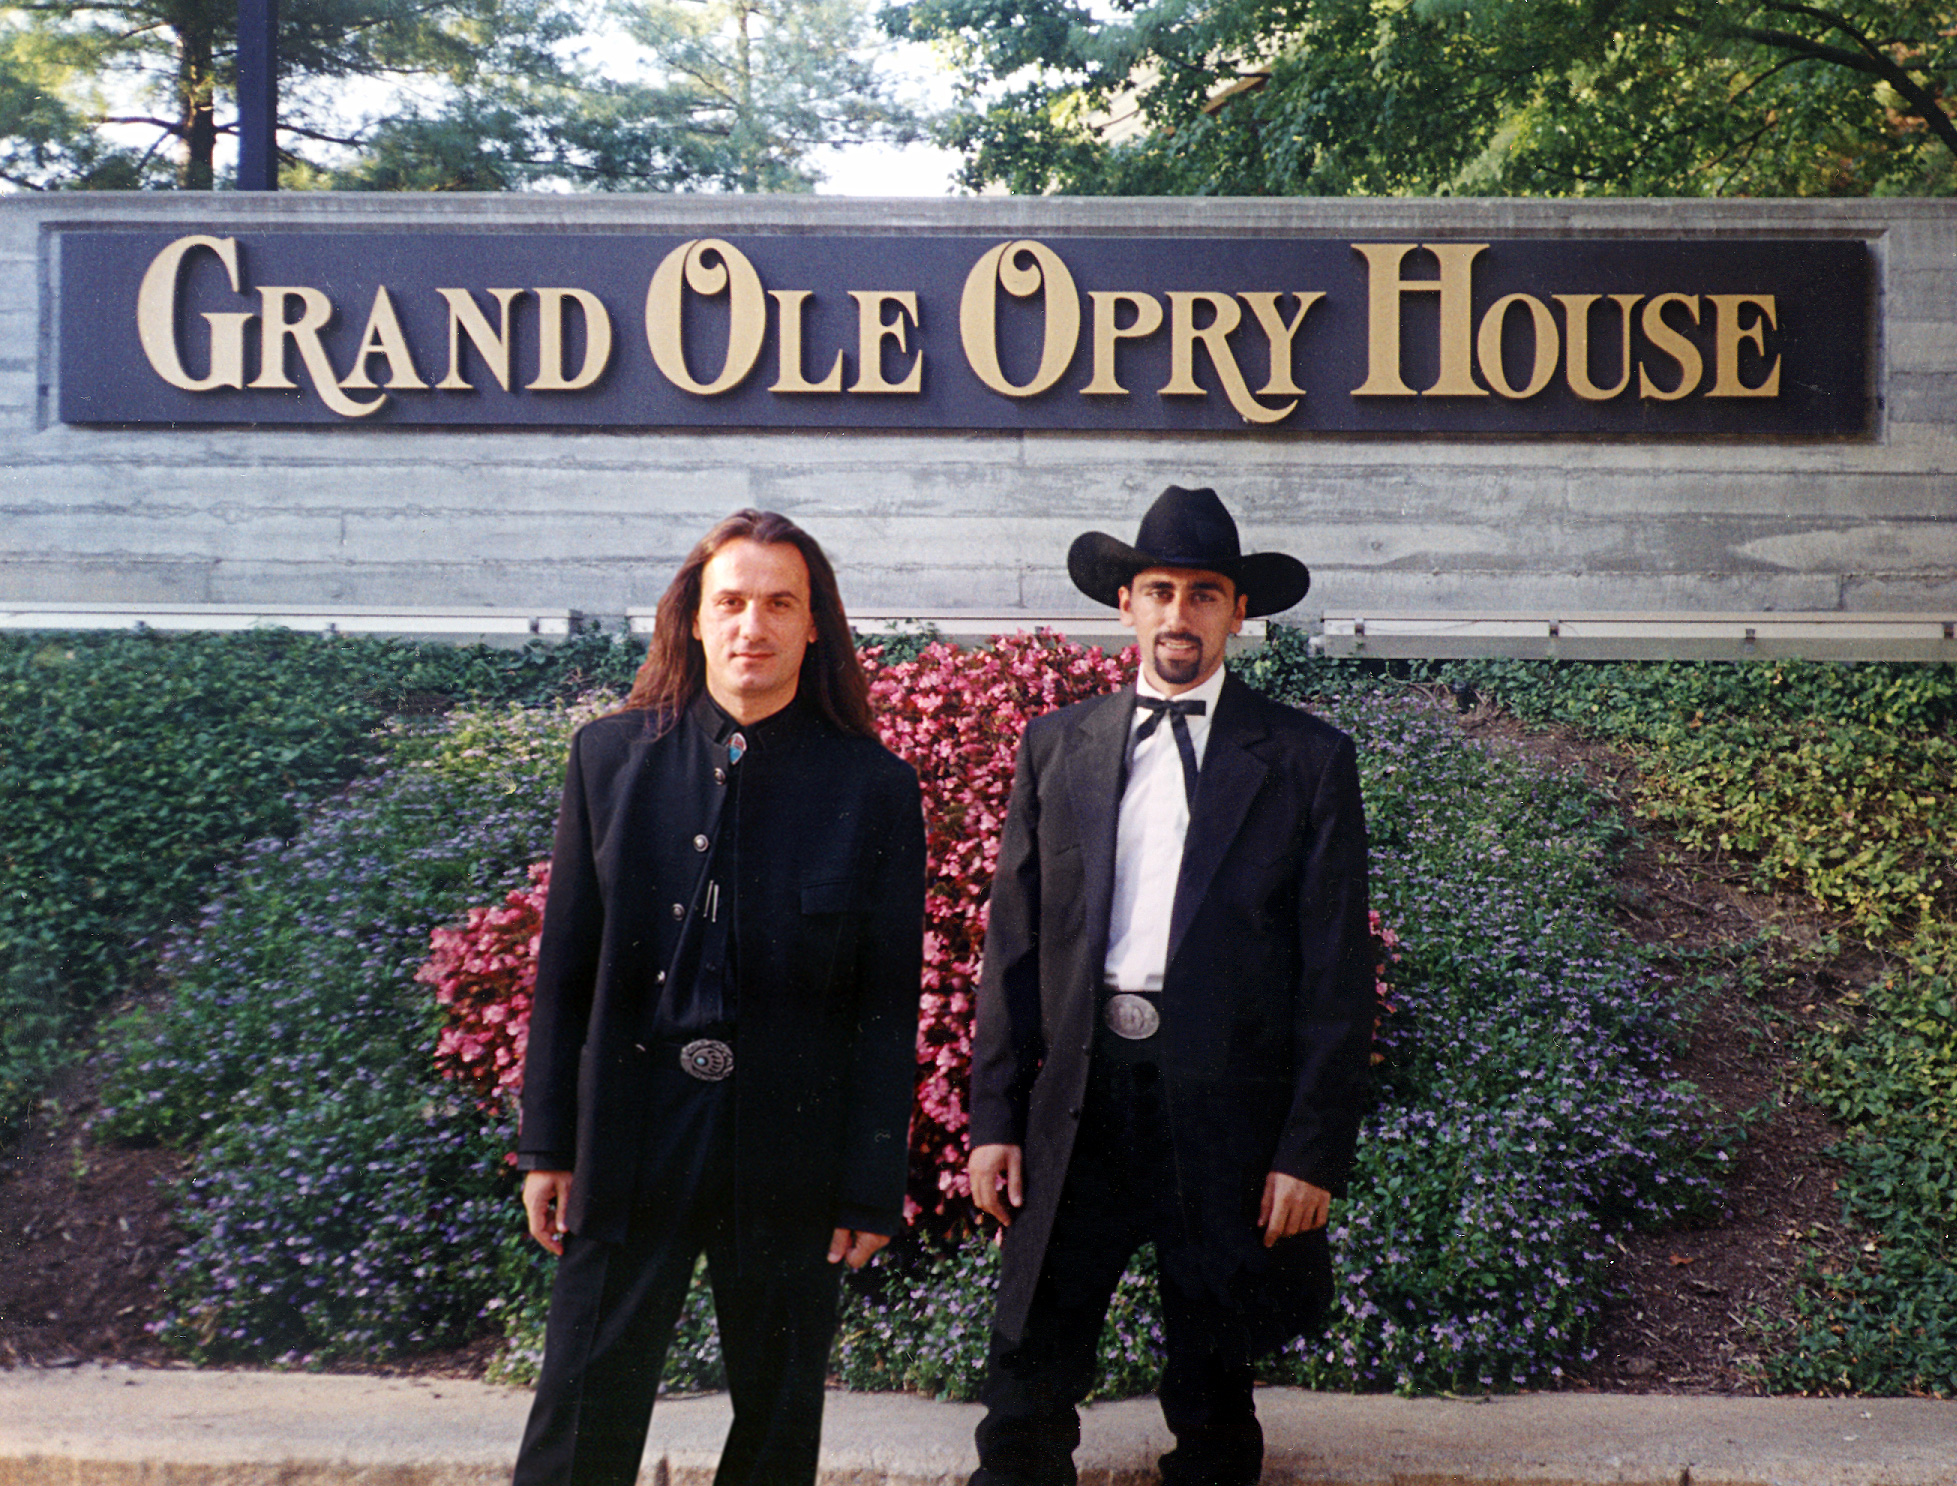 At the Grand Ole Opry House